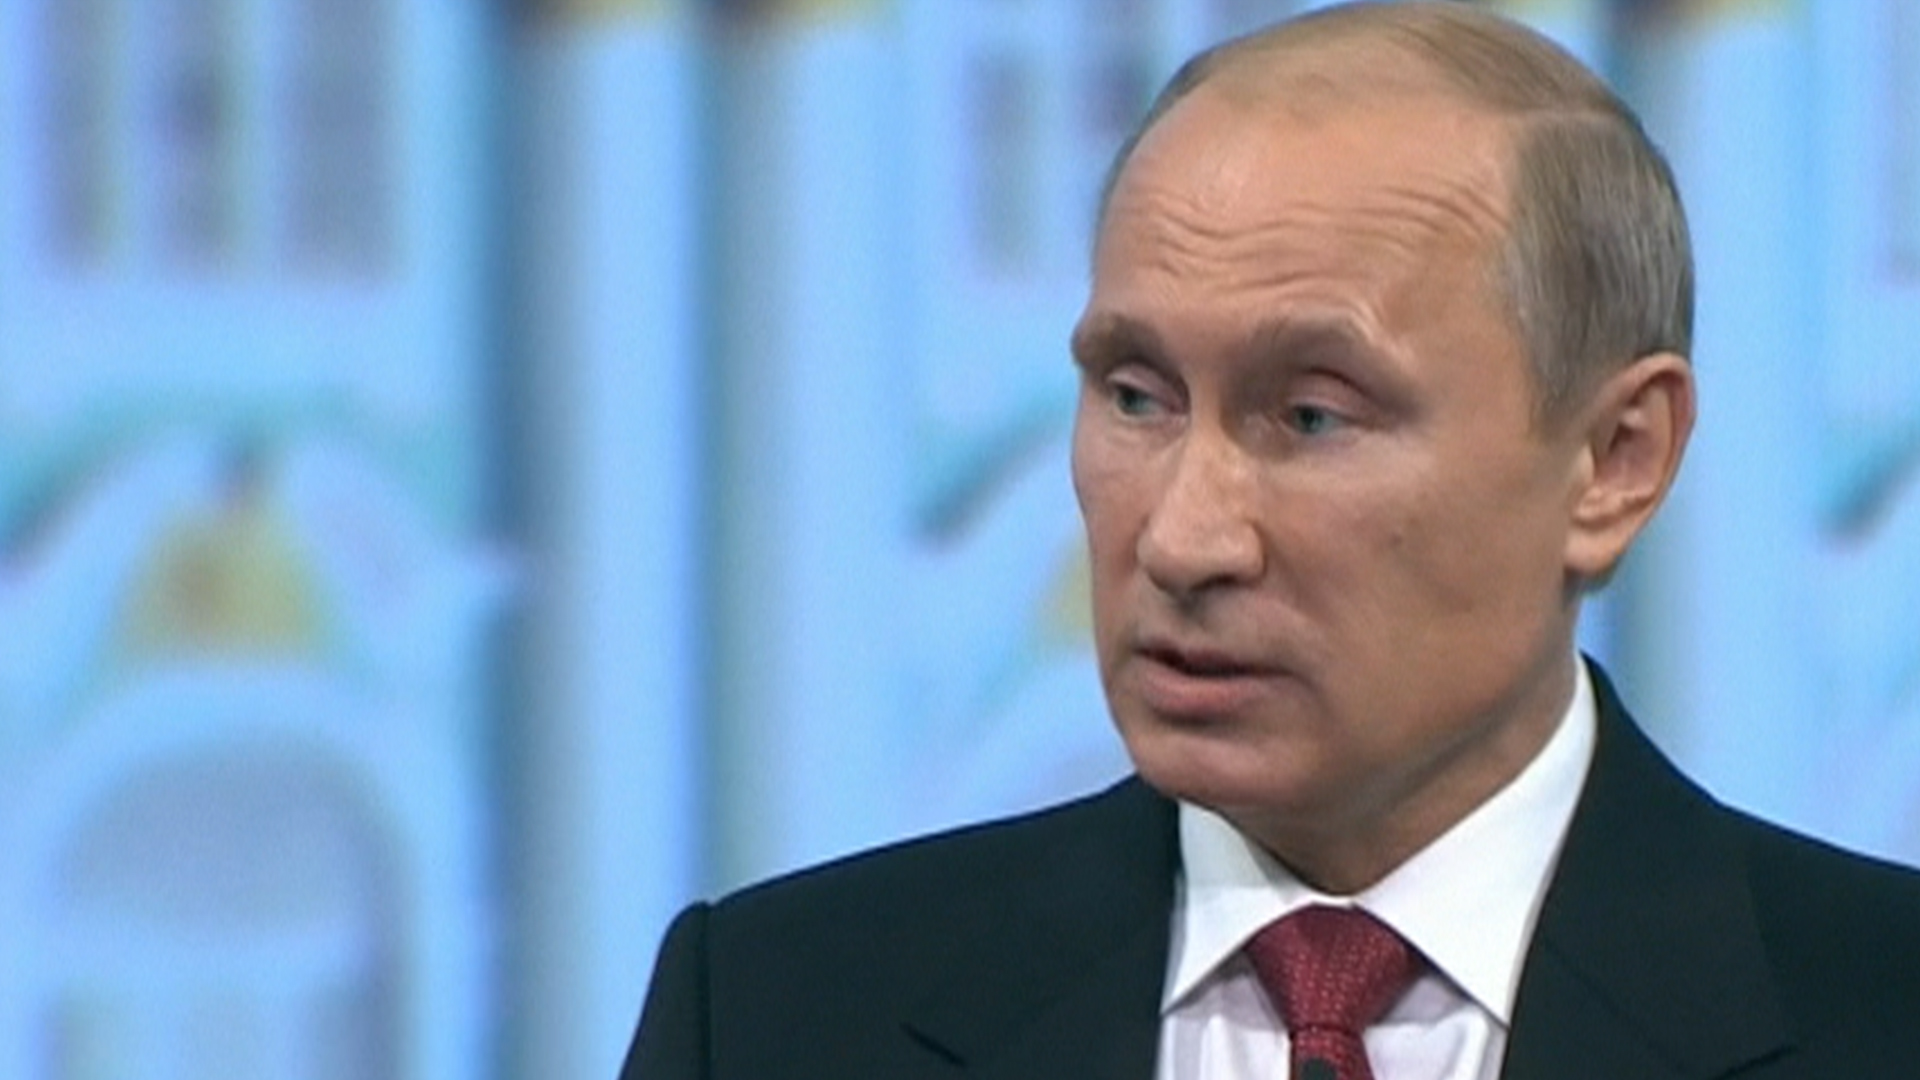 Obama's attempts to isolate Putin working?